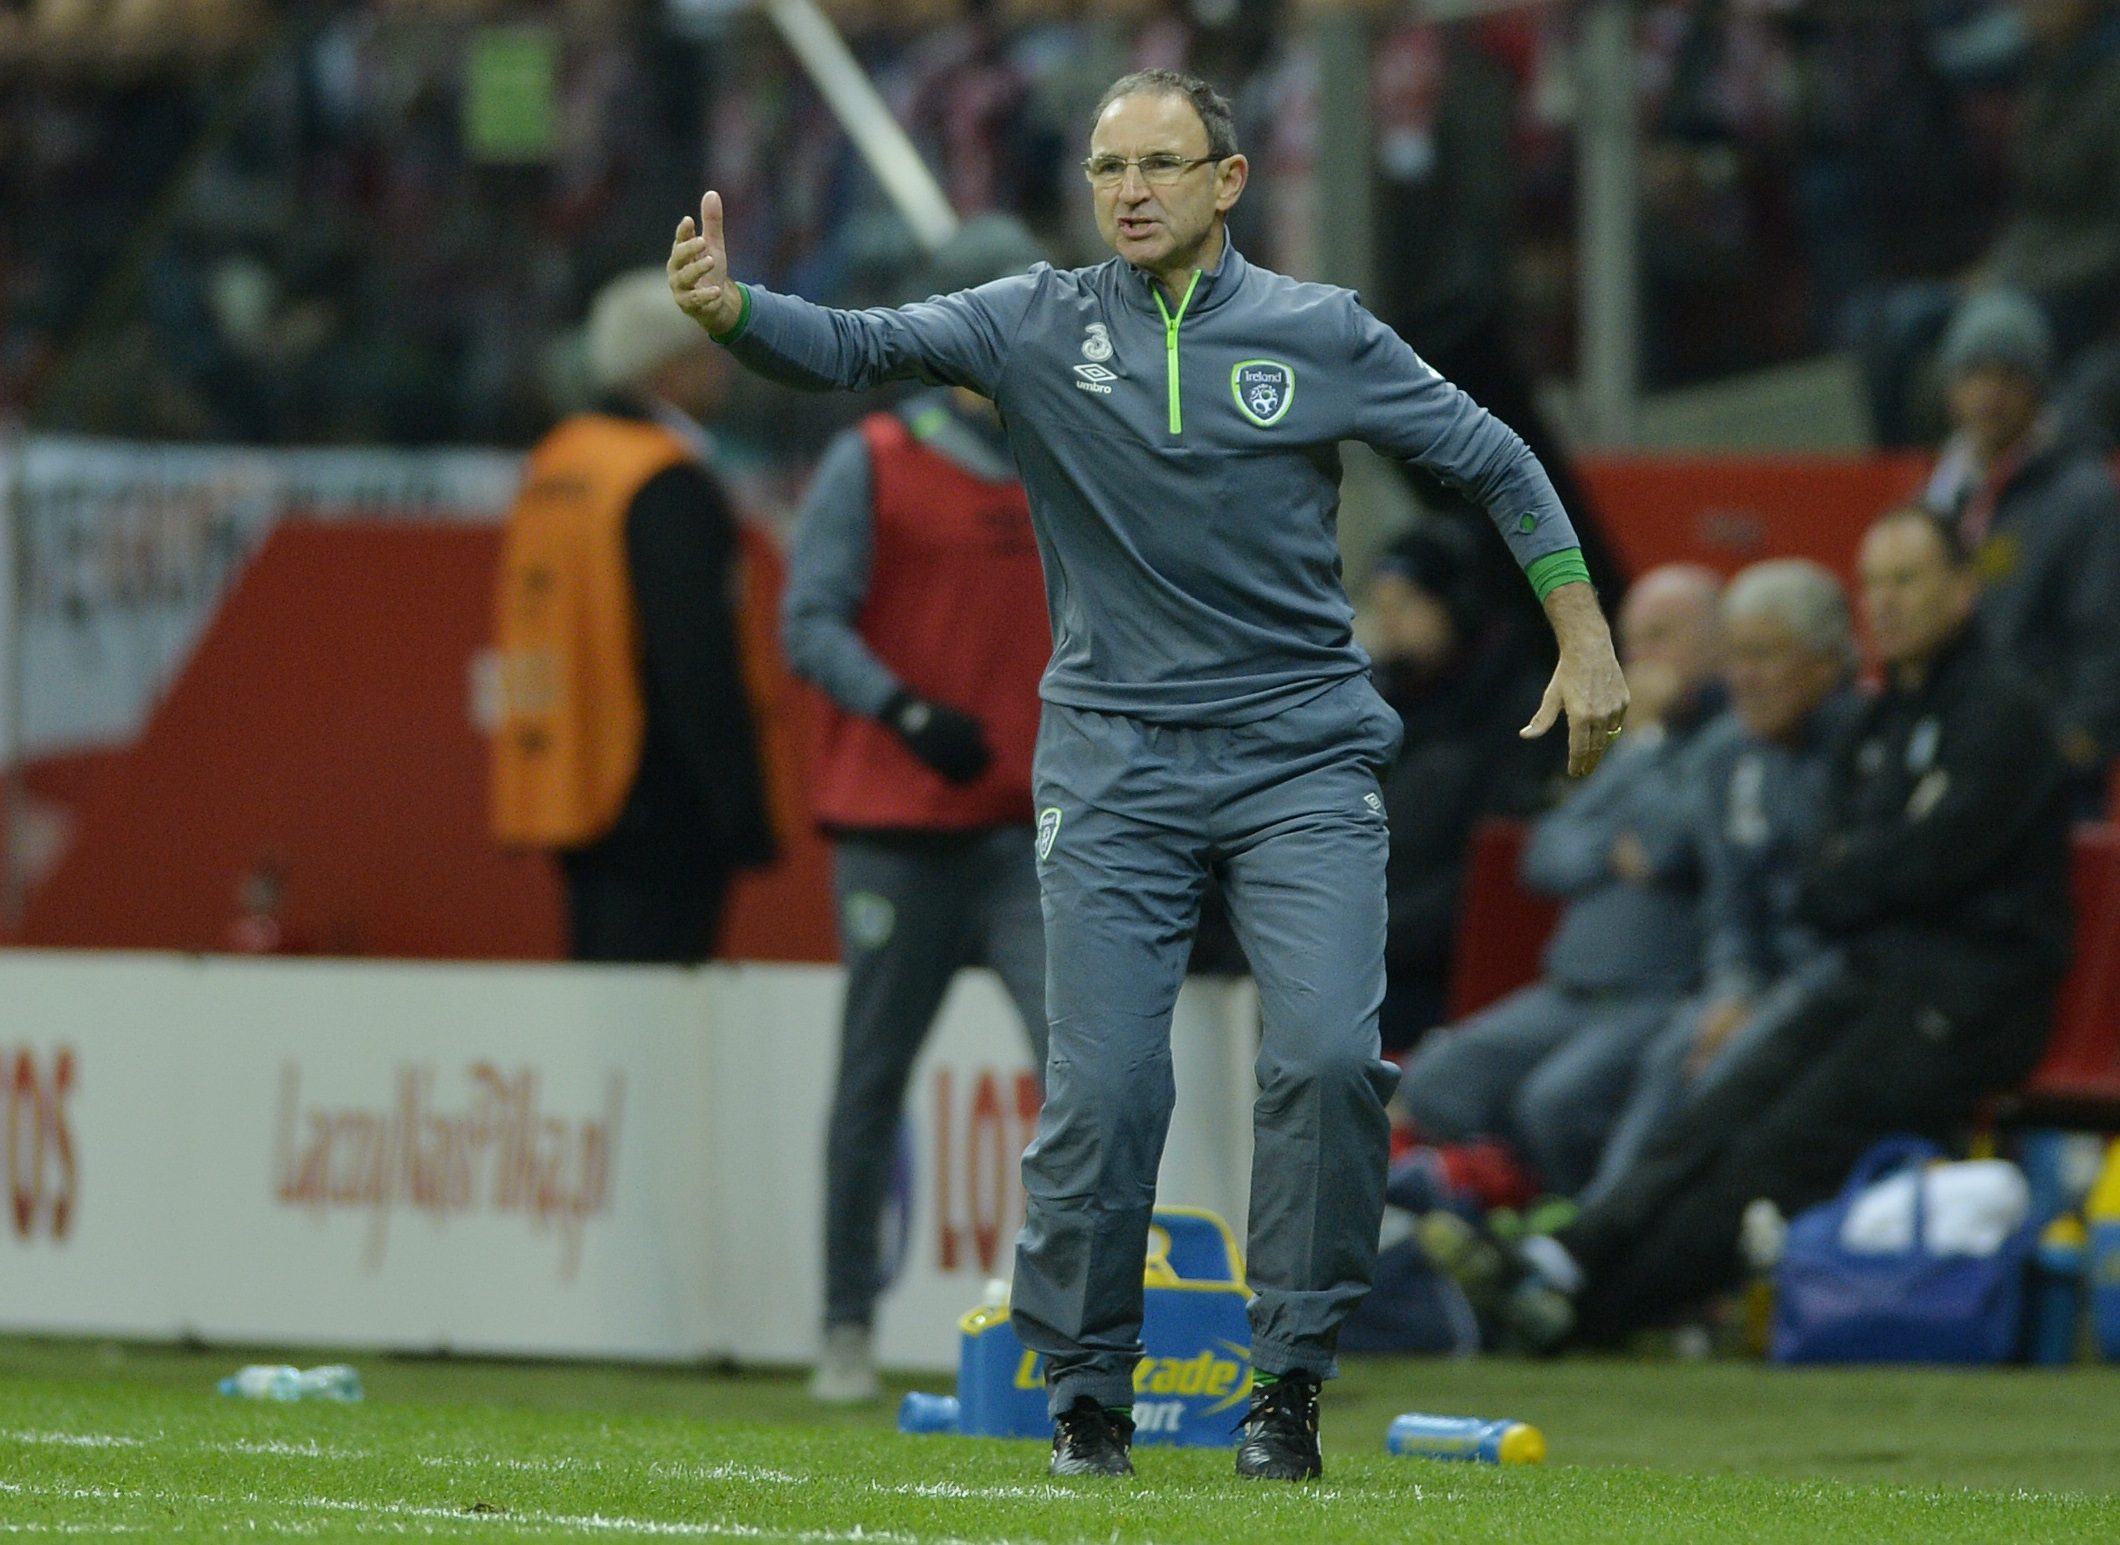 Football - Poland v Republic of Ireland - UEFA Euro 2016 Qualifying Group D - Stadion Narodowy, Warsaw, Poland - 11/10/15nIreland manager Martin O'Neill nAction Images via Reuters / Adam HoltnLivepicnEDITORIAL USE ONLY.